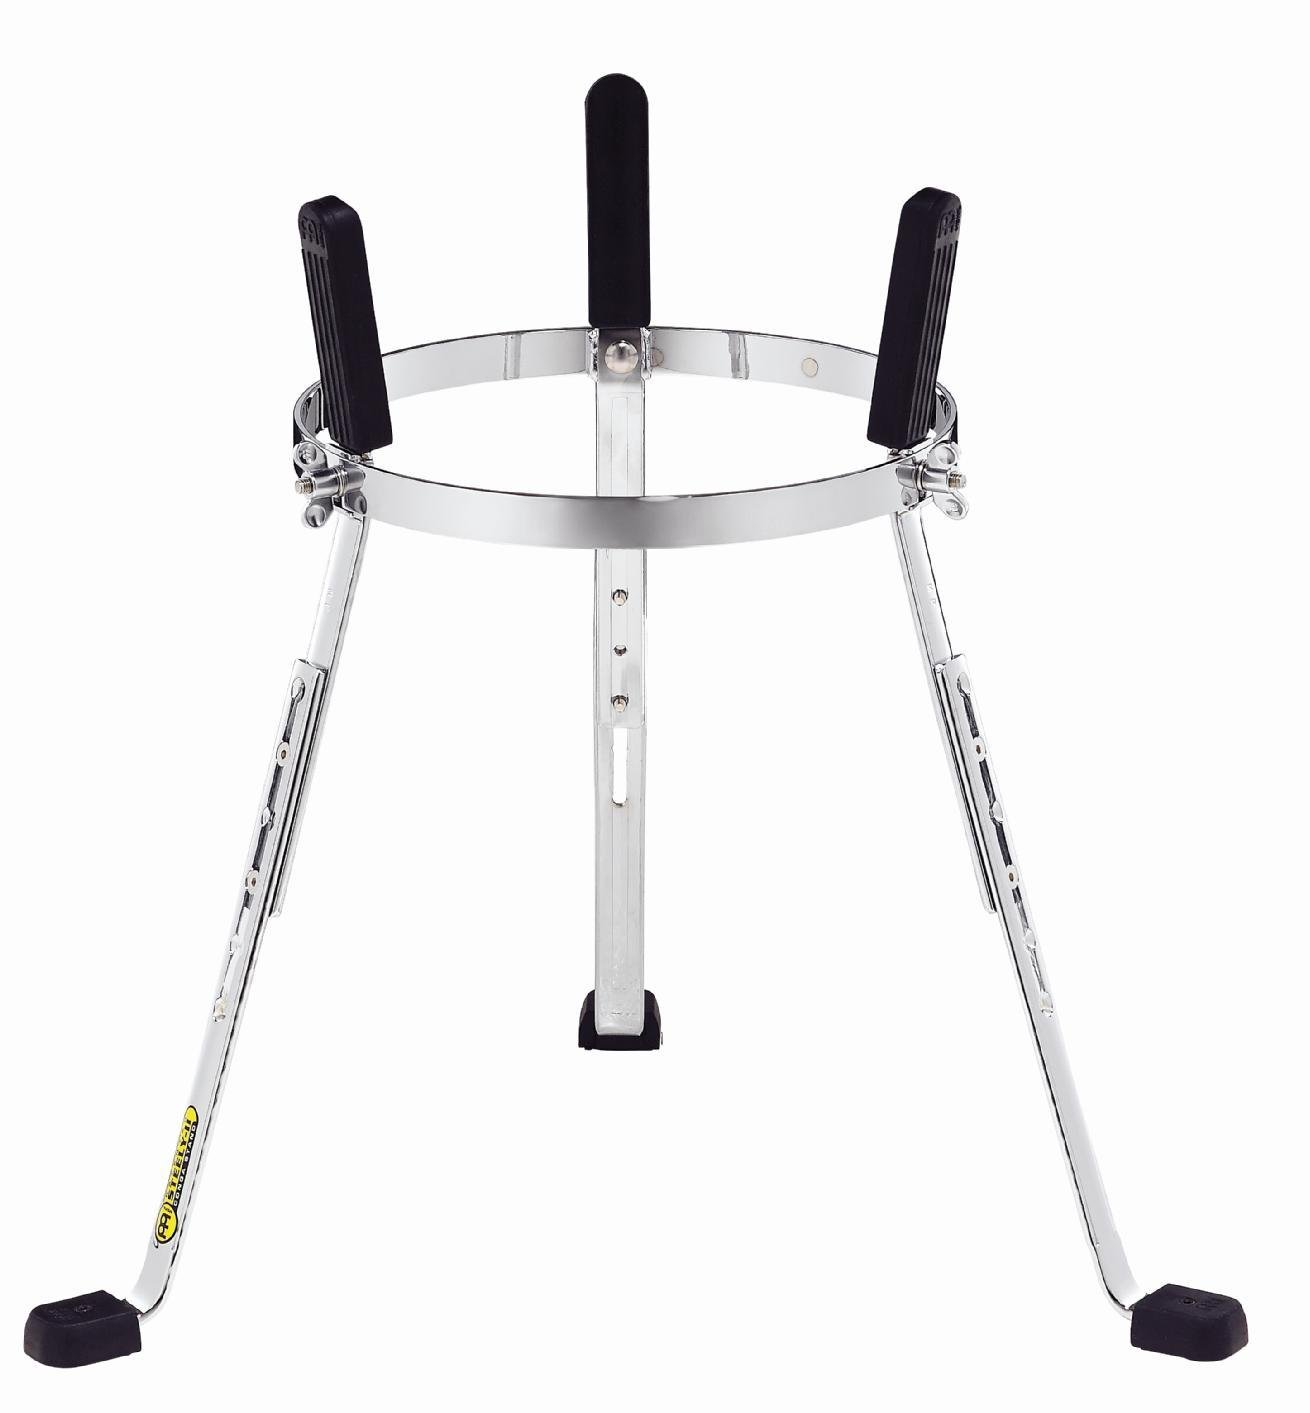 Meinl Percussion ST-WC1134CH Steely II Height Adjustable Stand for 11 3/4-Inch MEINL Woodcraft Congas, Chrome